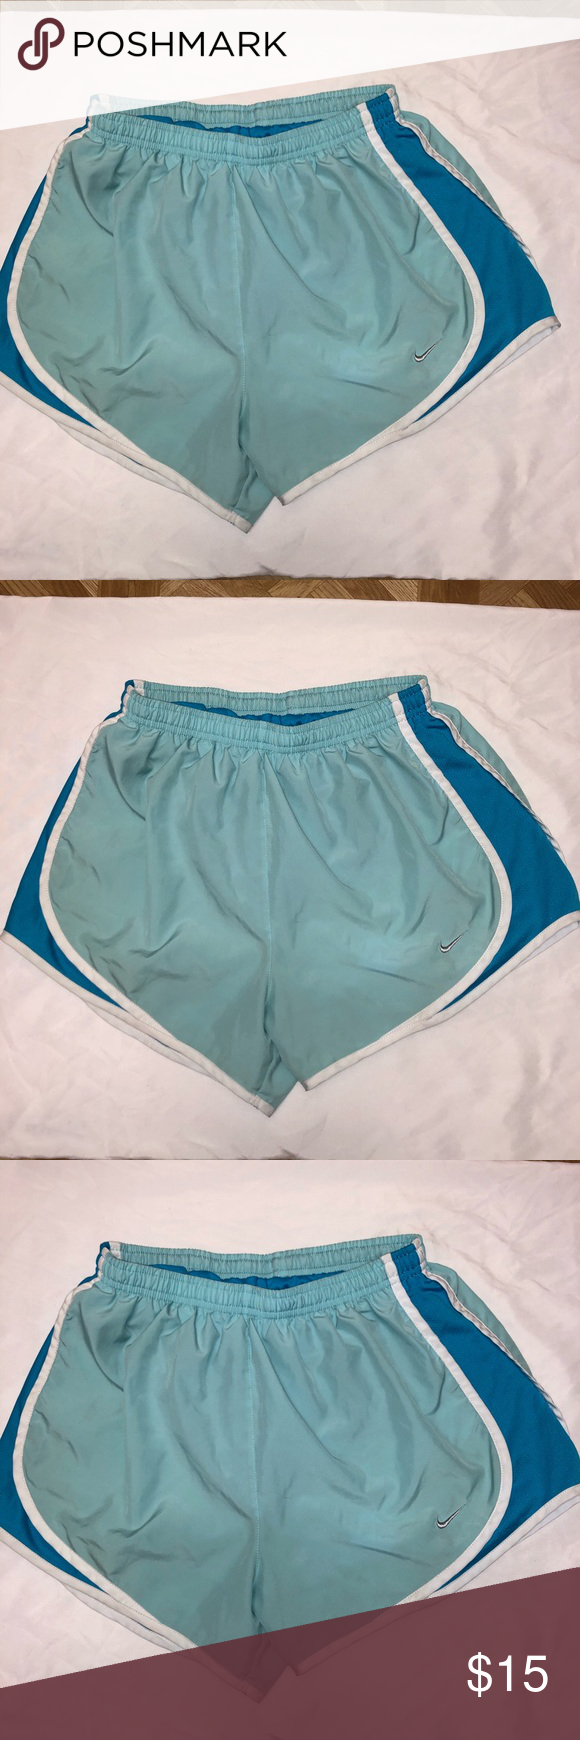 Nike Dri Fit Running Light Blue Women's Shorts Nike Drifit shorts. gently used please see photos for more details Nike Shorts #lightblueshorts